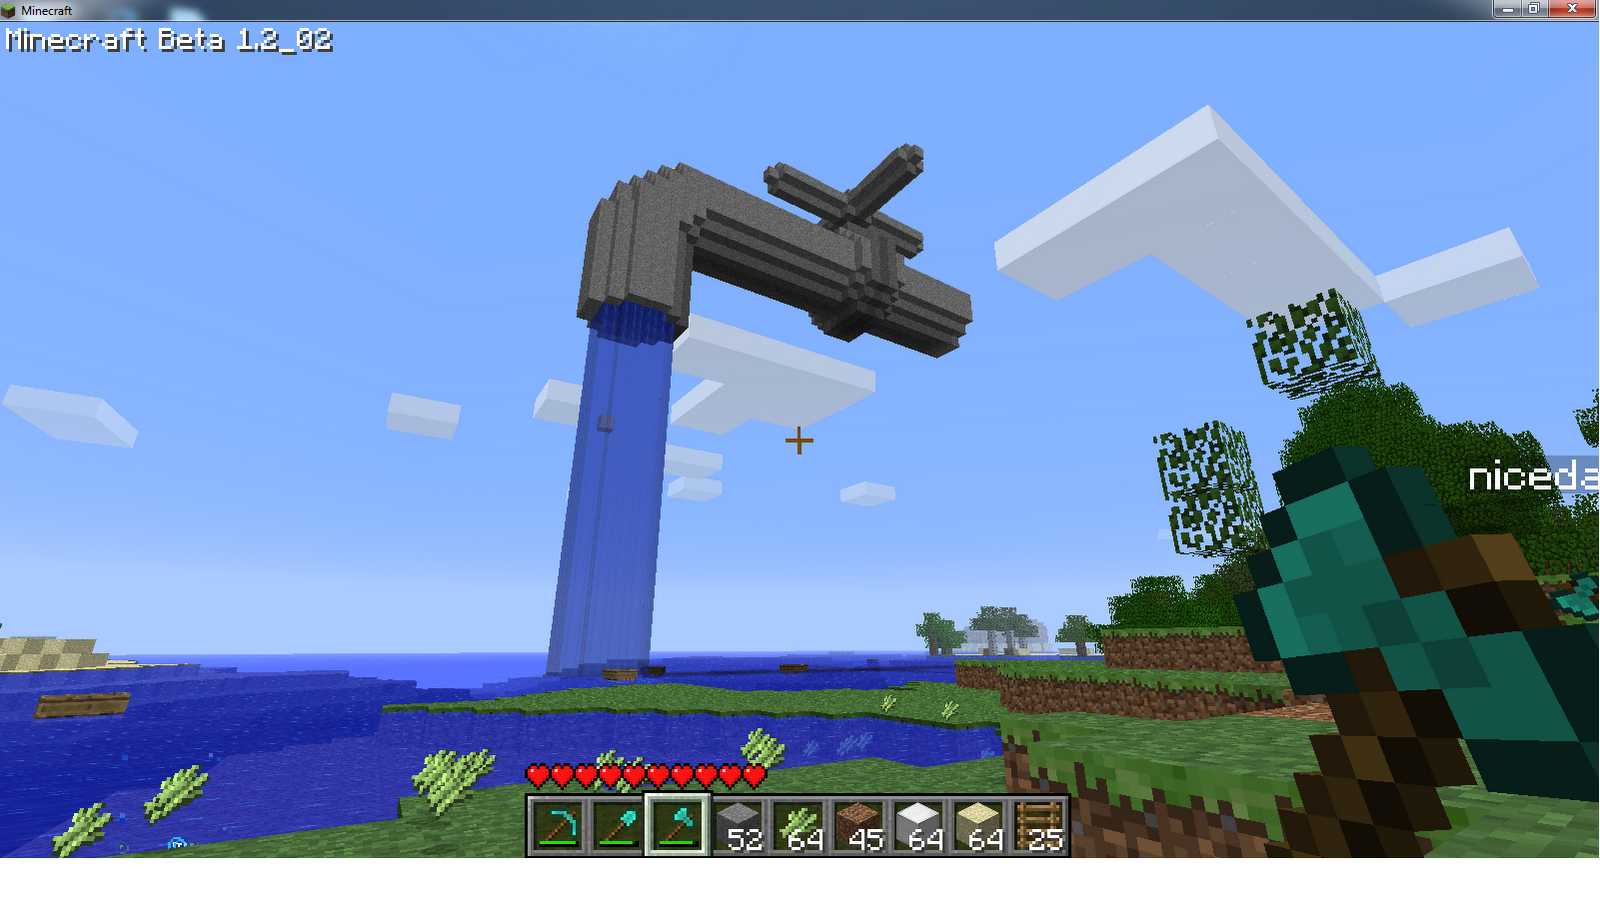 This is a cool little optical illusion from Minecraft